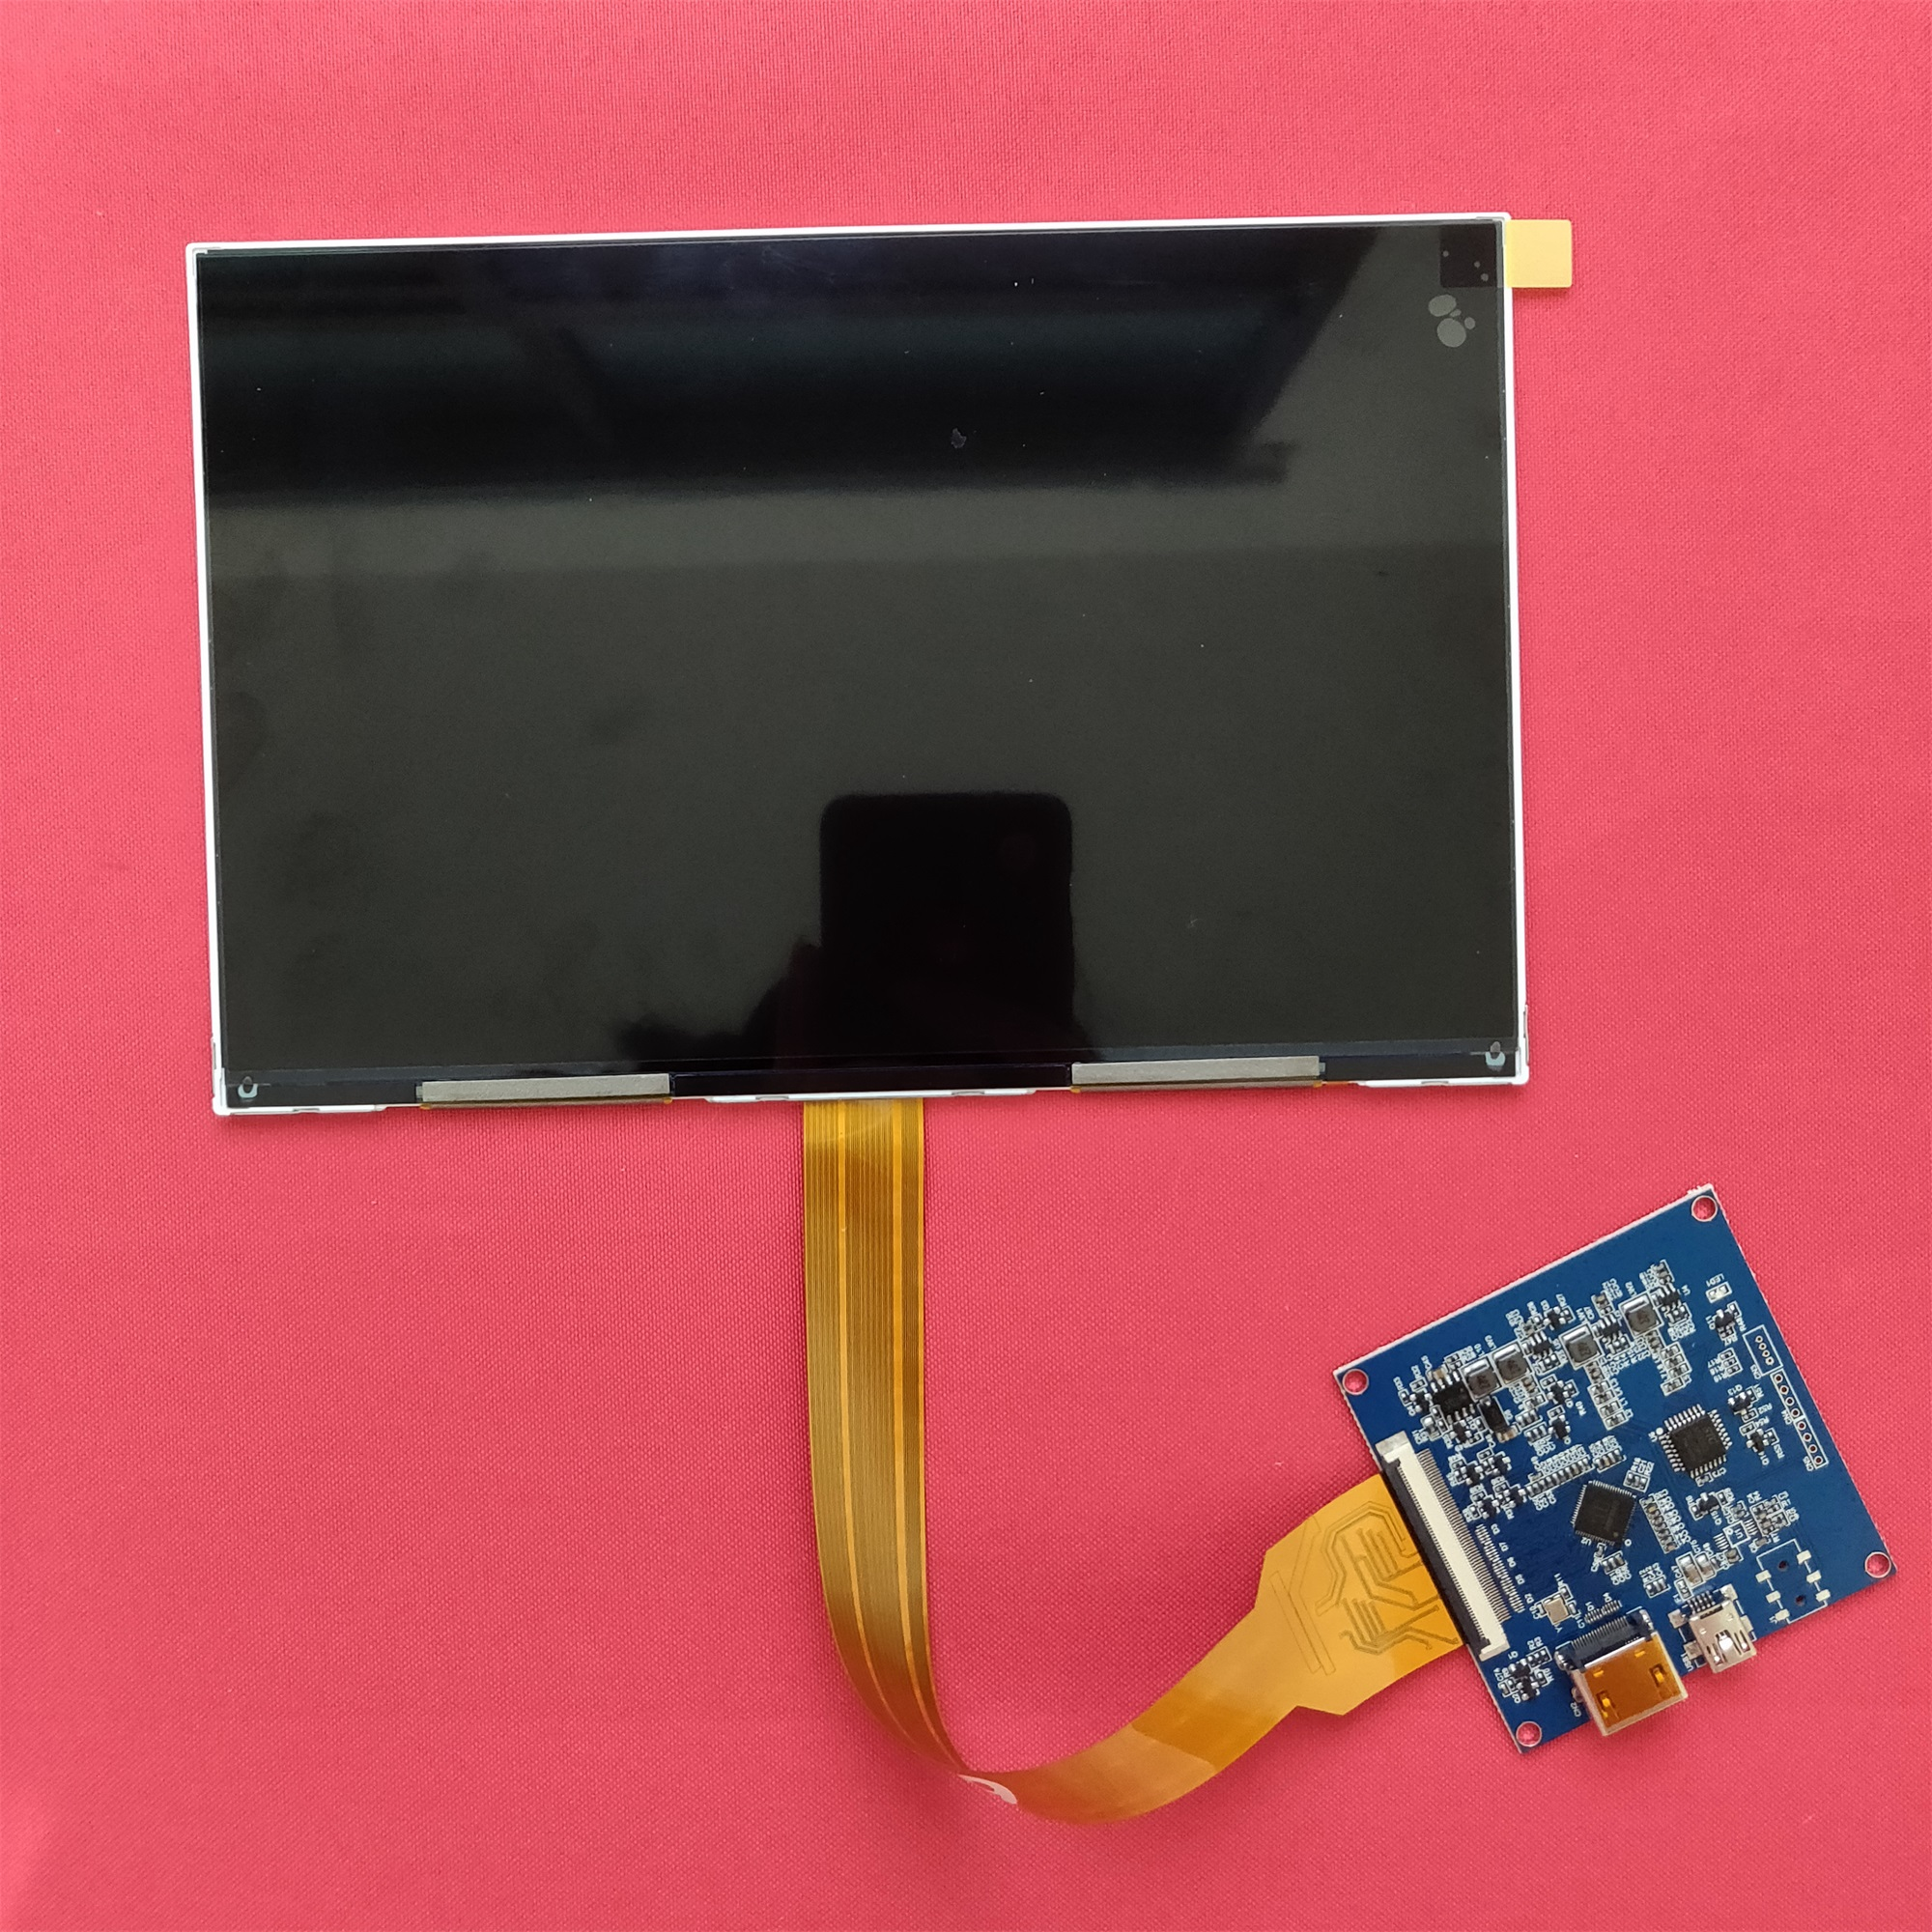 8 9 inch 2560*1600 2k 1440p IPS lcd display 16:10 monitor with HDMI-MIPI  driver board 50hz for DIY DLP 3d printer Raspberry PI 3